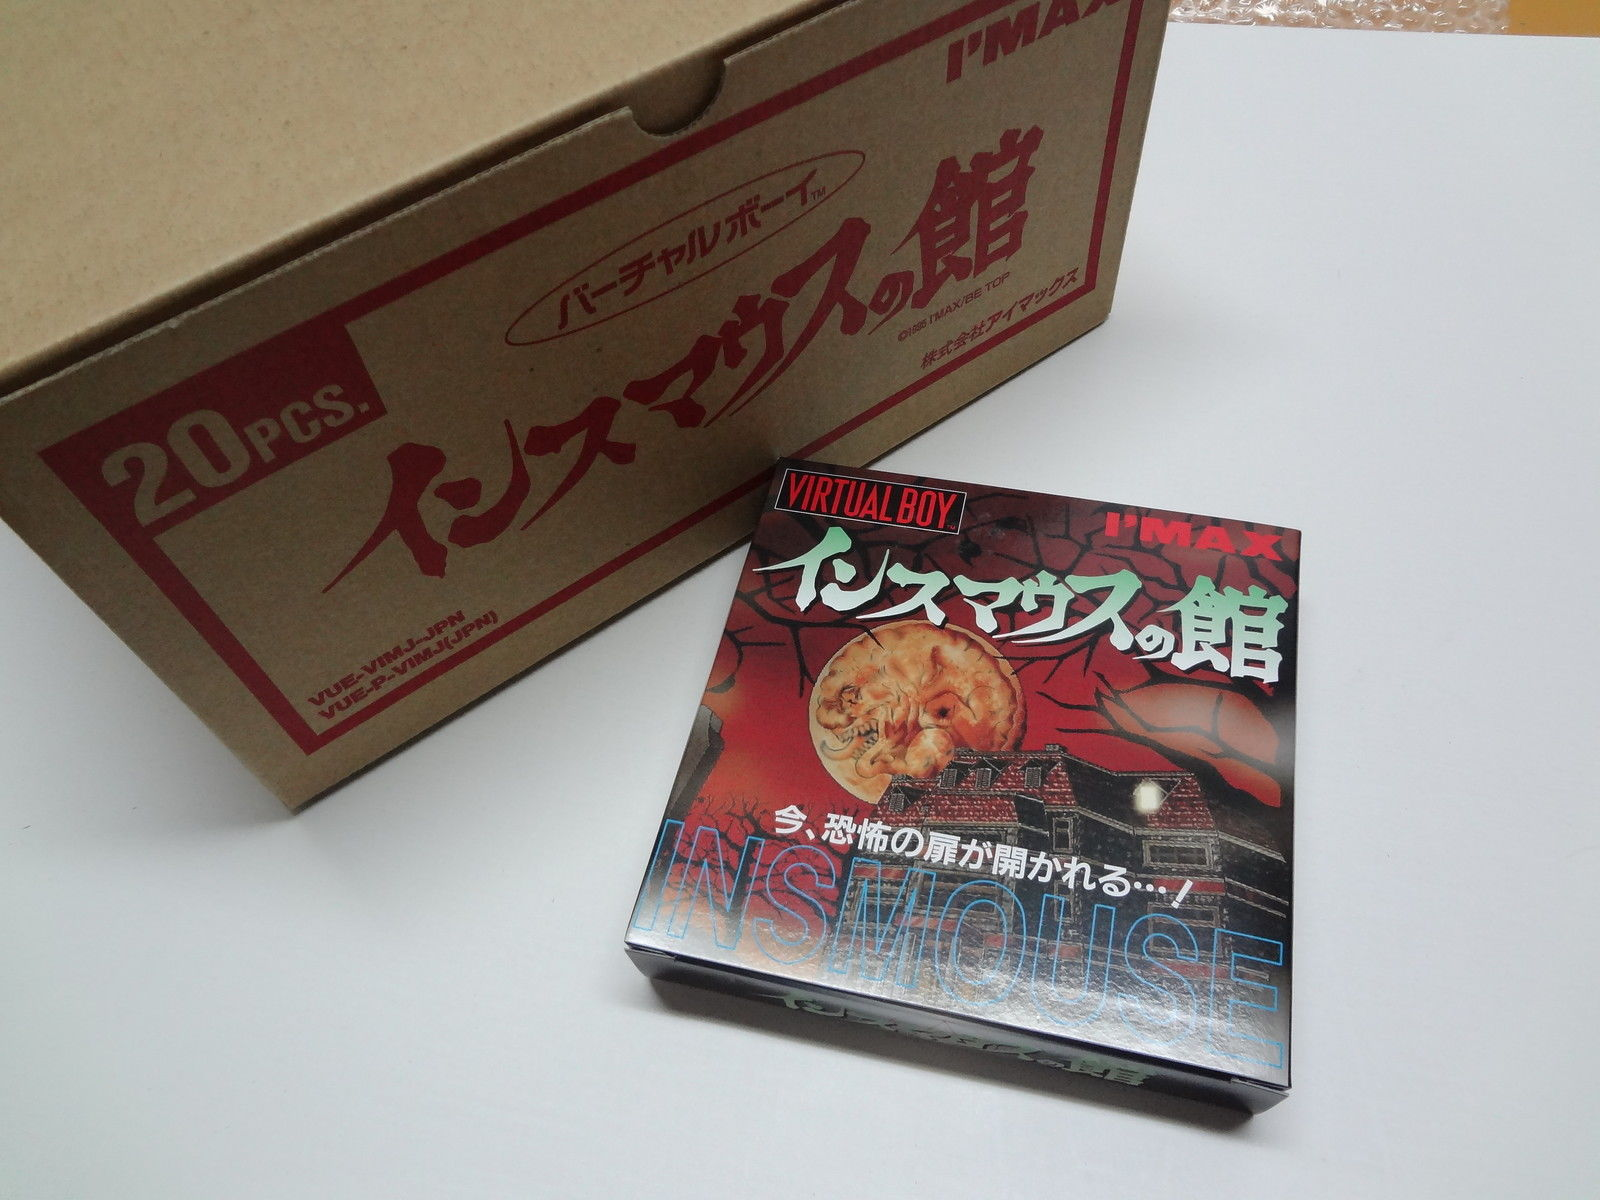 Insmouse no Yakata 20-pack Nintendo Virtual Boy Japan NEW